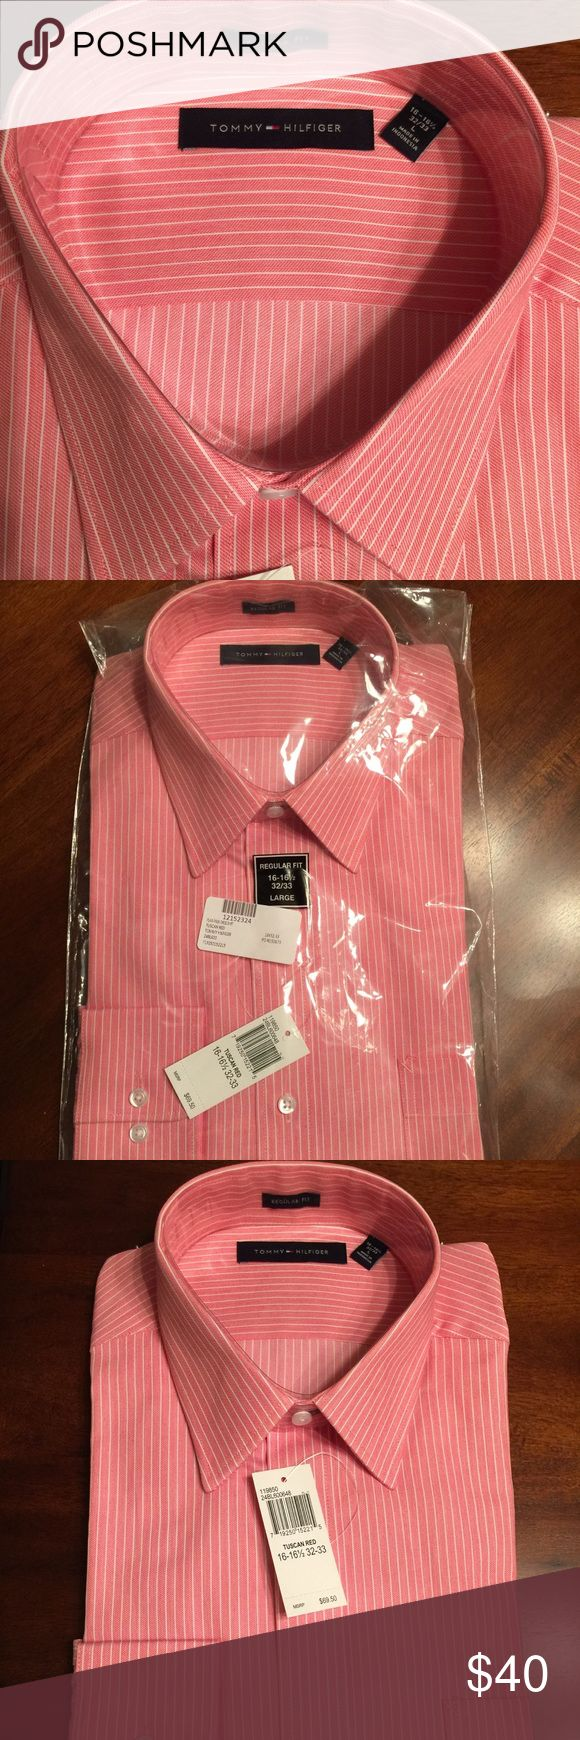 NWT Tommy Hilfiger Regular Fit Dress Shirt NWT Tommy Hilfiger Striped Regular Fit Dress Shirt. Color per package is Tuscan Red. Size Large: 16x32-33. 100% Cotton. Still in original packaging.  Beautiful/Handsome 😉shirt. Retails $69.50 Tommy Hilfiger Shirts Dress Shirts